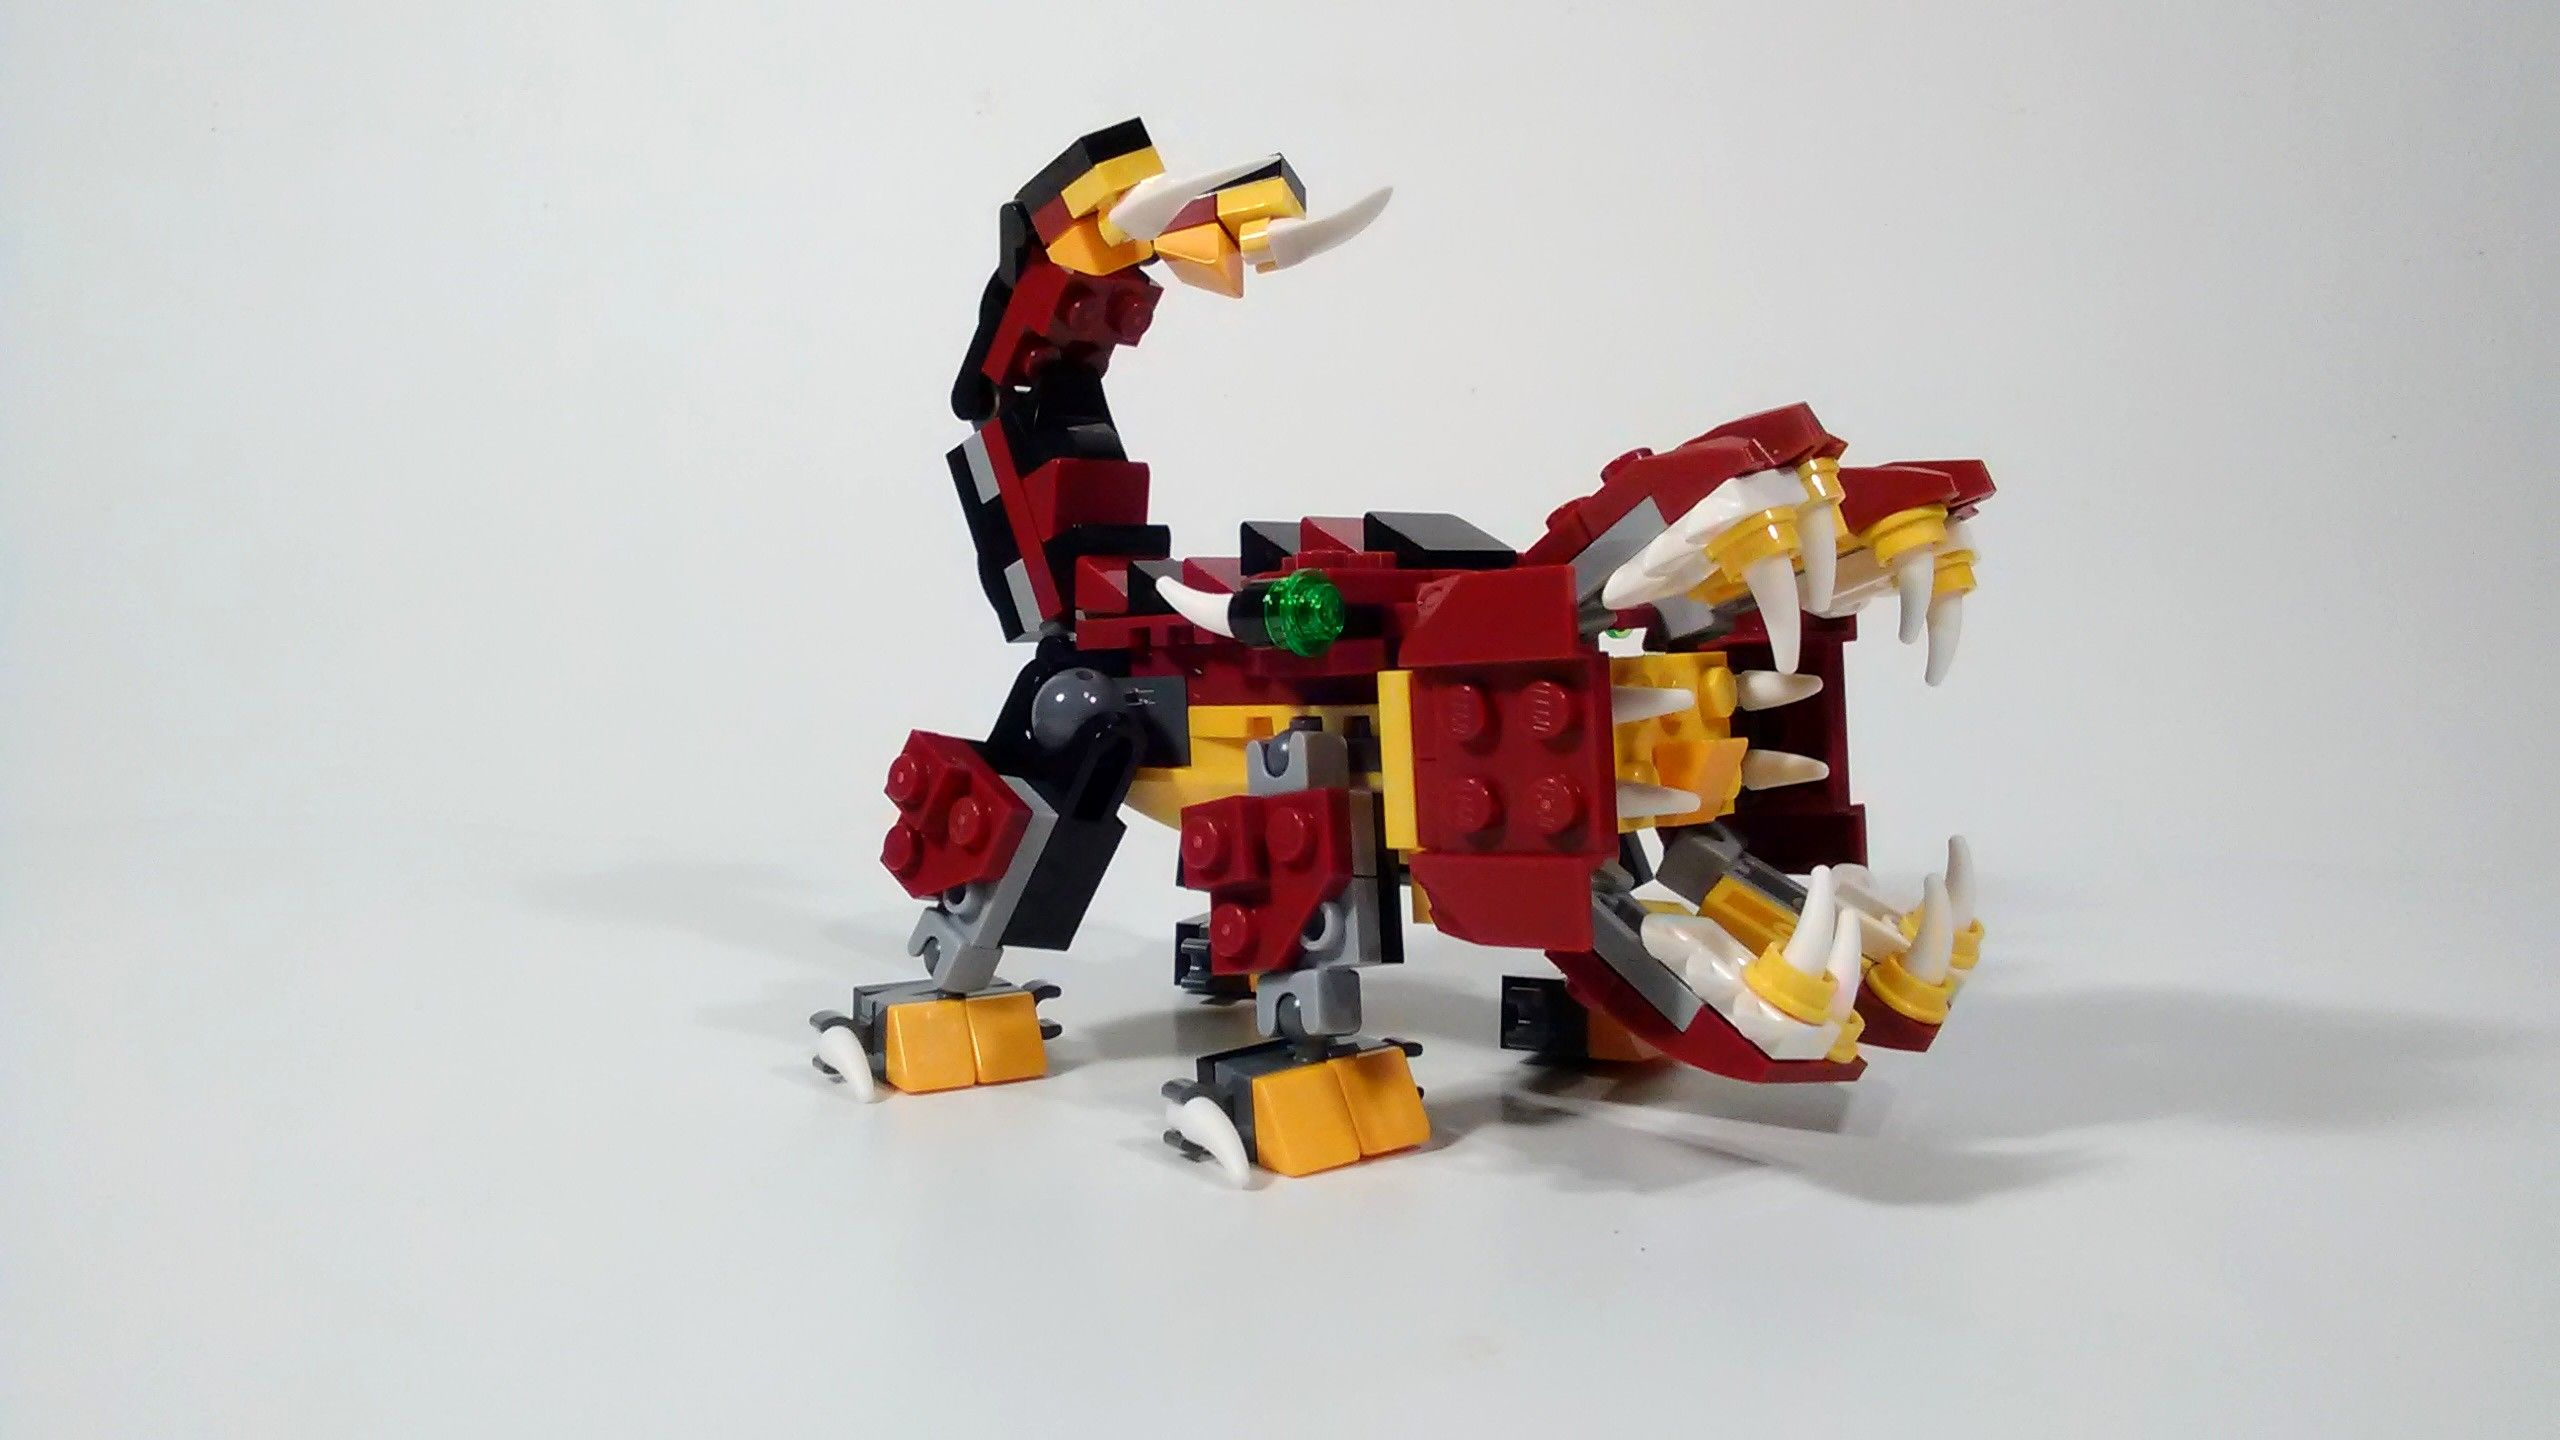 Chew All An Alternate Build Of The Lego Creator Set The Mythical